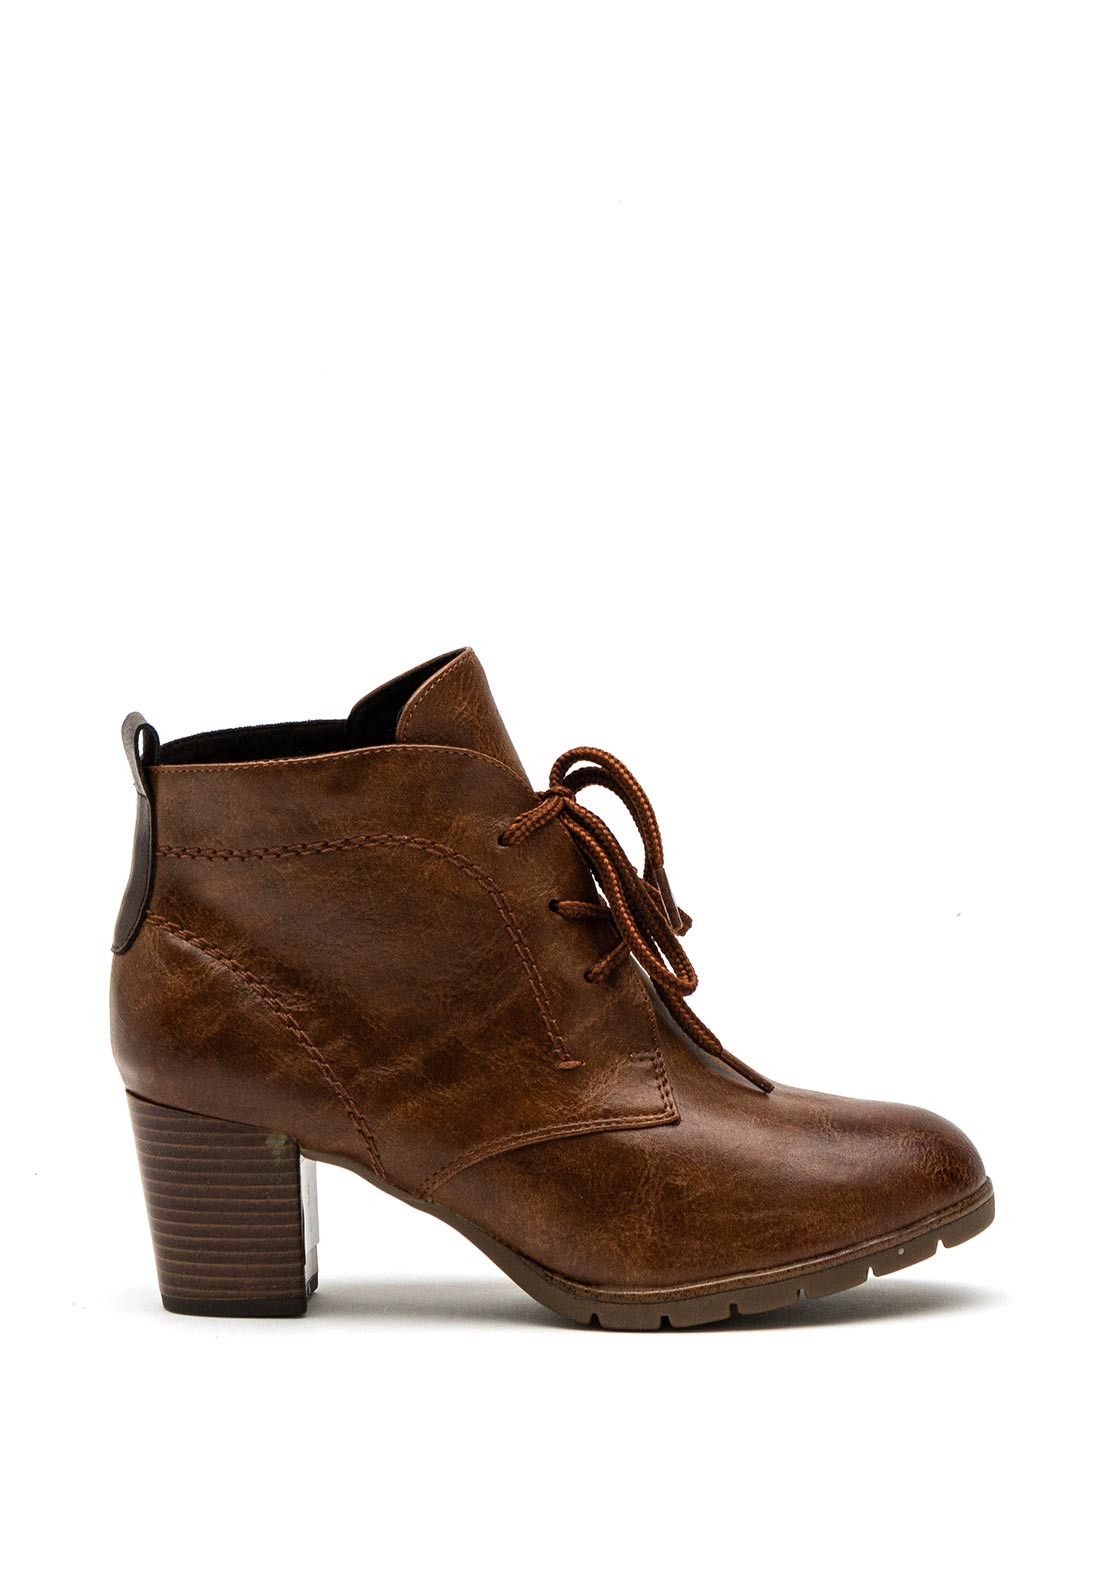 Marco Tozzi Lace Up Chunky Heel Ankle Boots, Brown